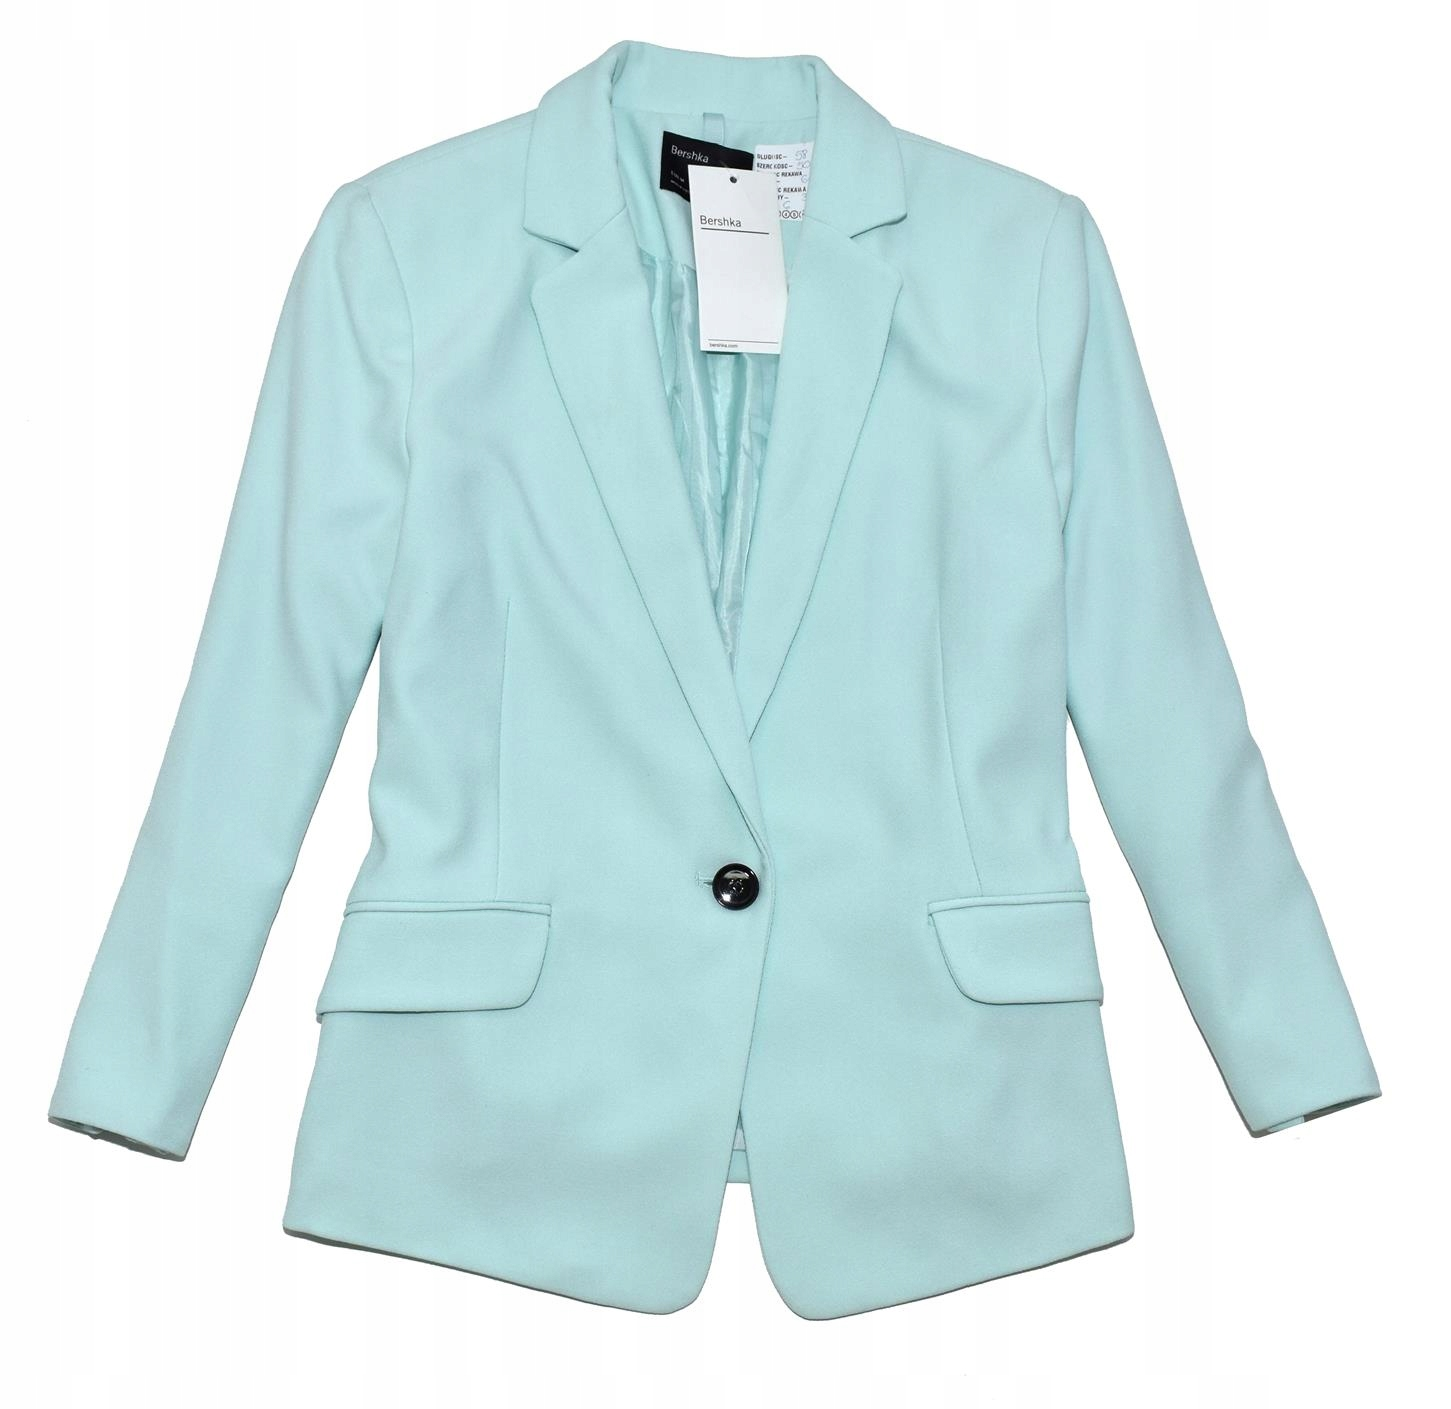 KK 304 BESRHKA_TRENDY NEW FROZEN MINT BLAZER_M